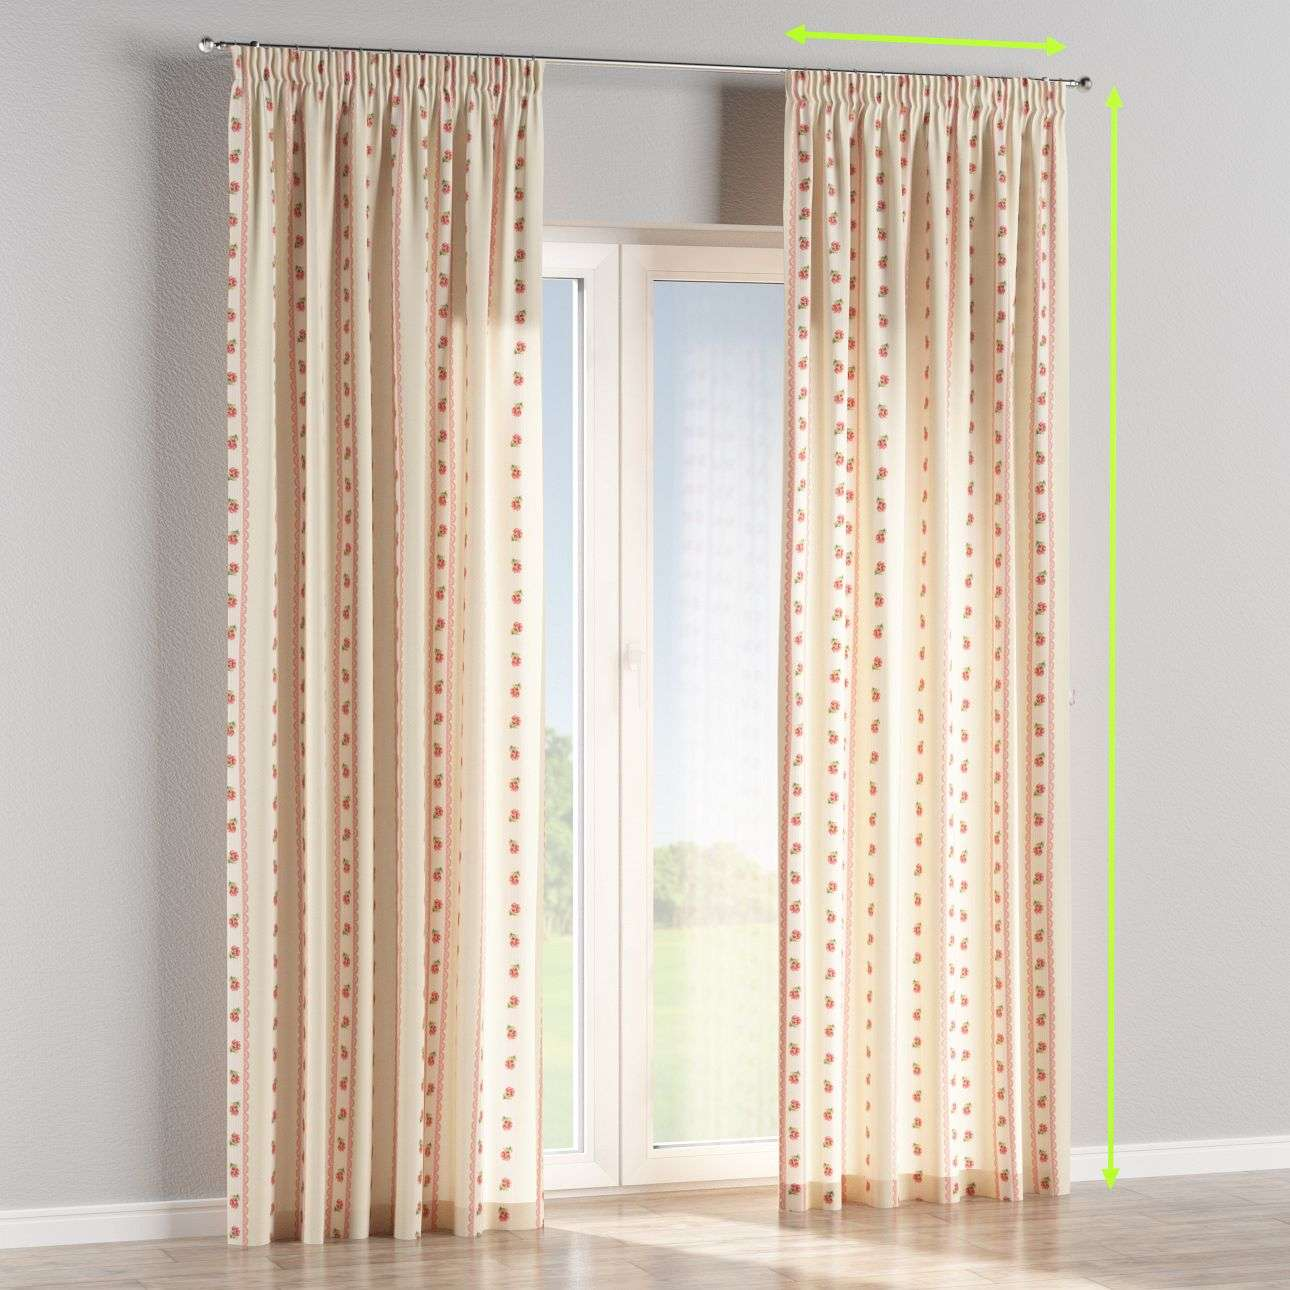 Pencil pleat curtains in collection Ashley, fabric: 137-48